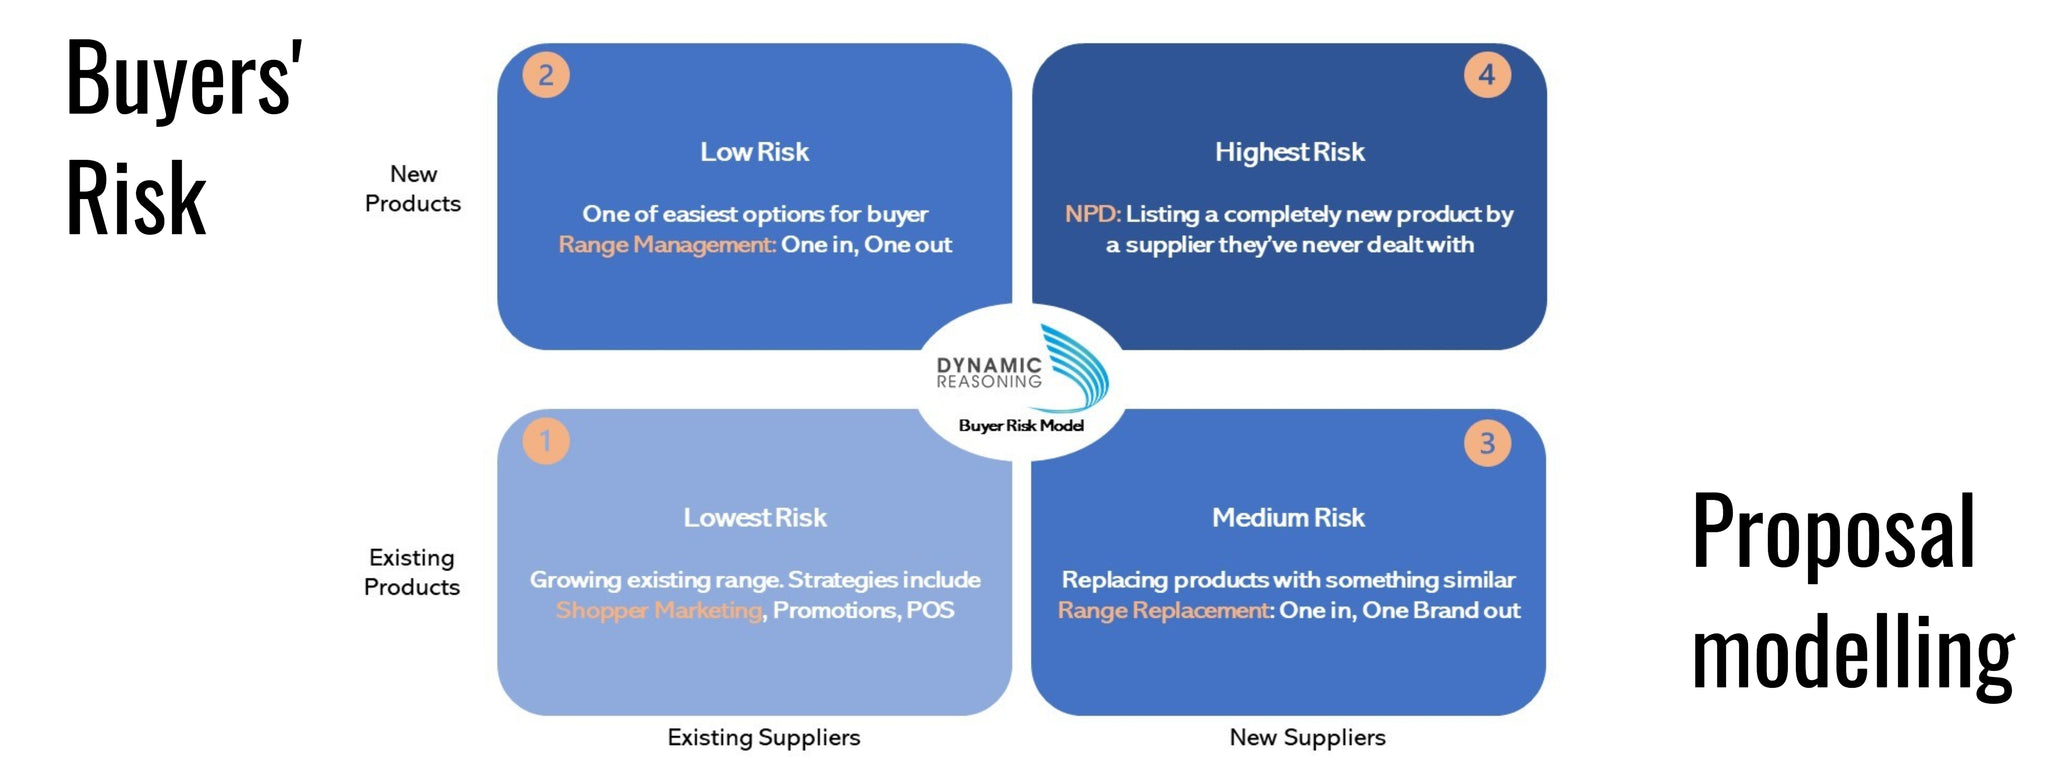 Model to evaluate risk to buyers to improve sales proposals developed by Dynamic Reasoning